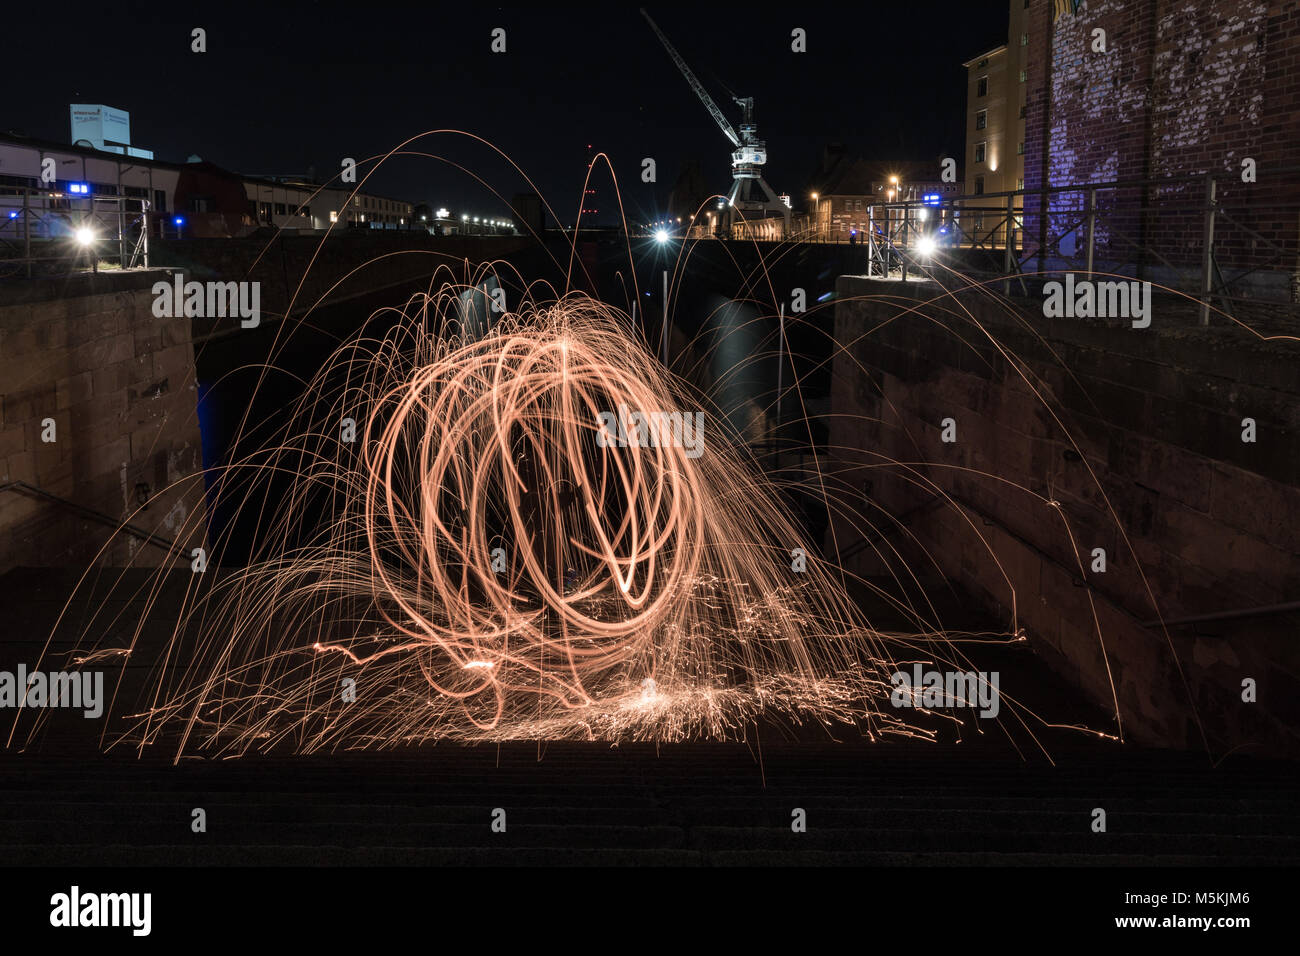 Fireball in the harbour. Steel wool. Stock Photo